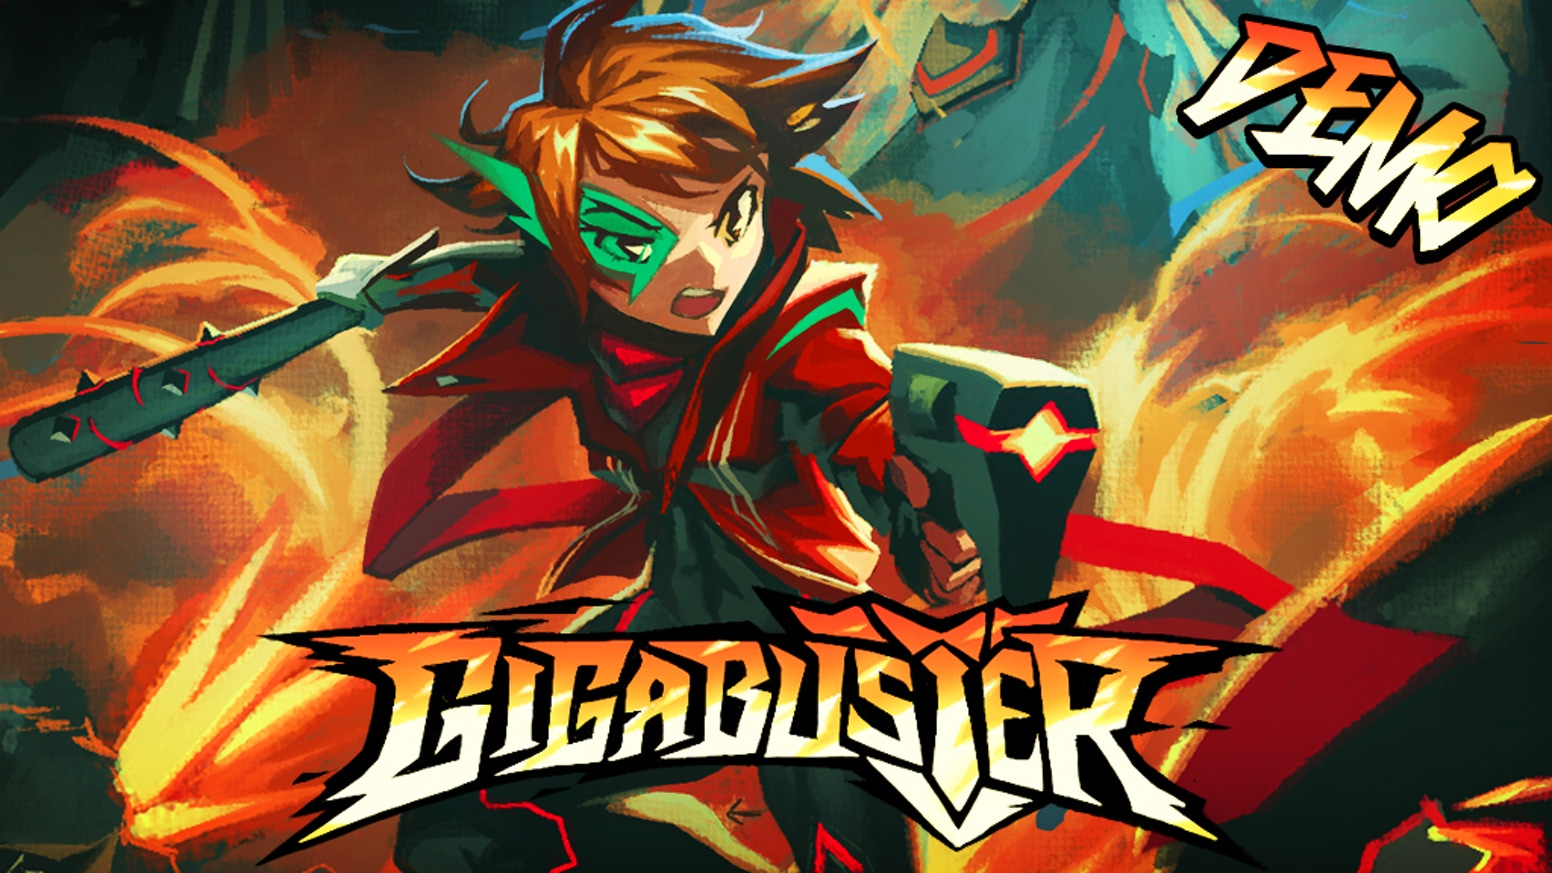 GIGABUSTER - Blazing action platformer (Demo Available) by